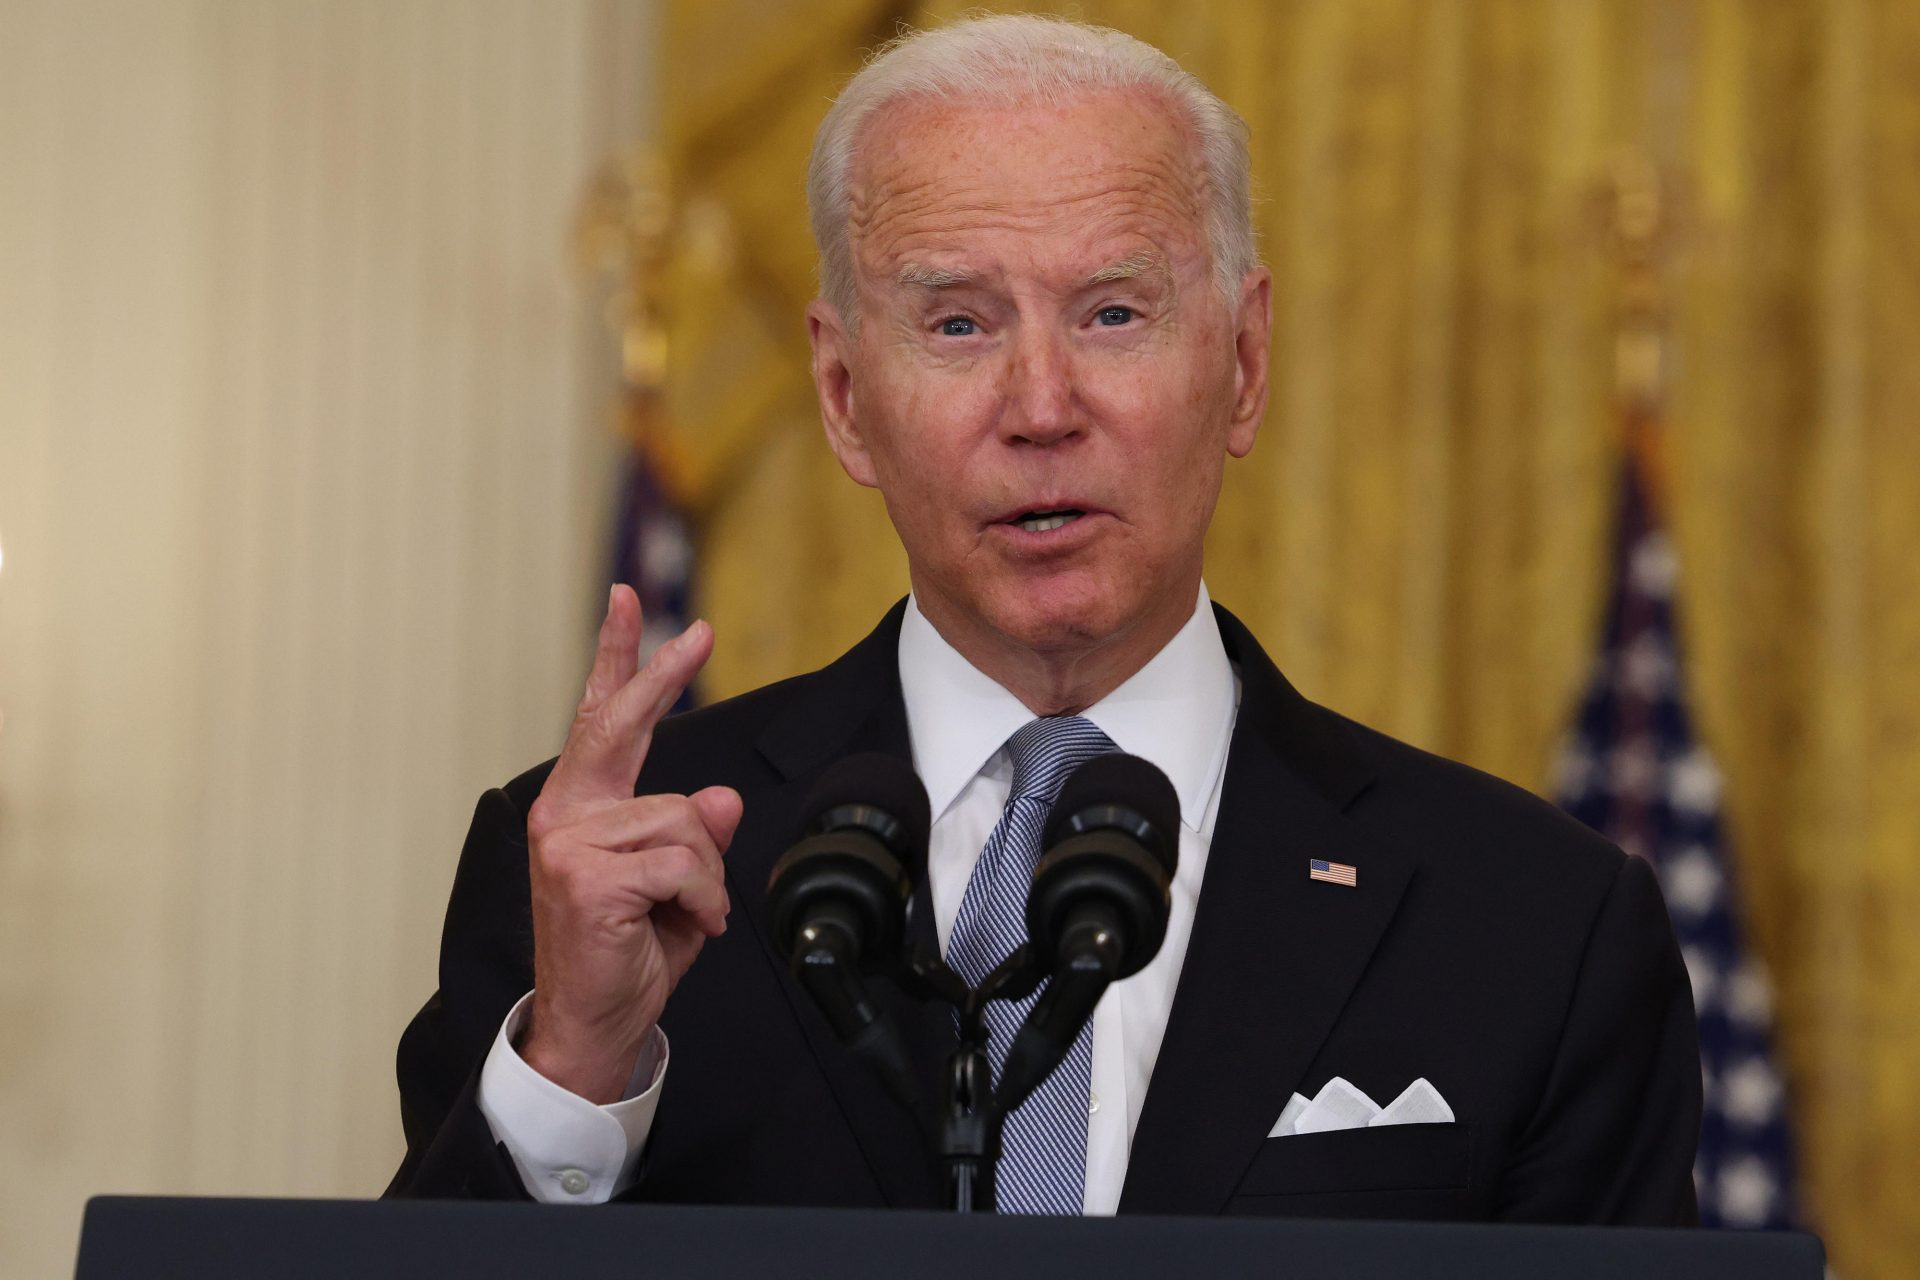 Joe Biden gestures during a White House address in which he defended his decisions in Afghanistan. Photo: Anna Moneymaker/Getty Images